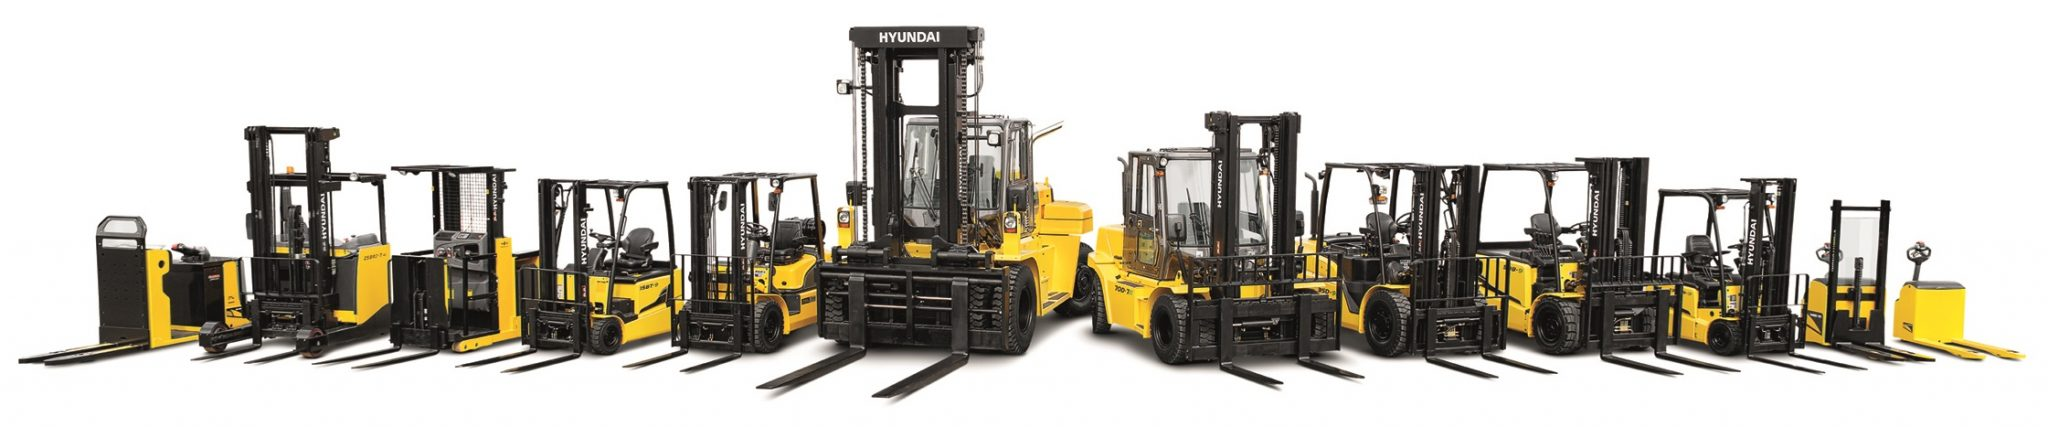 Line up of most 7 Series Hyundai Forklifts